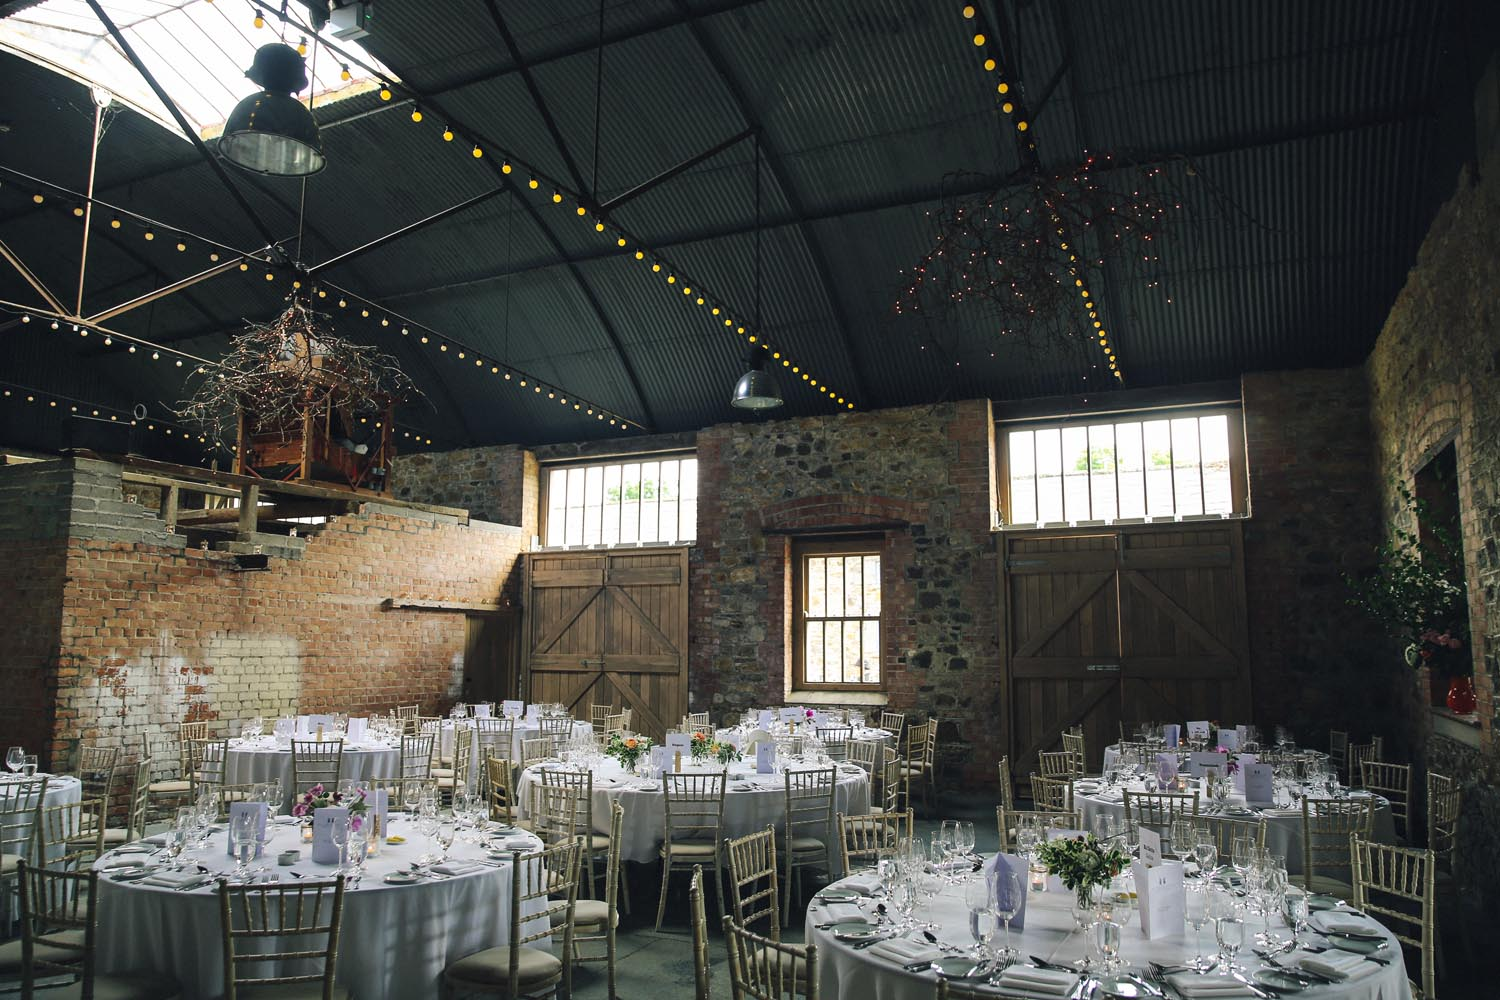 Table setting in the Grain Store